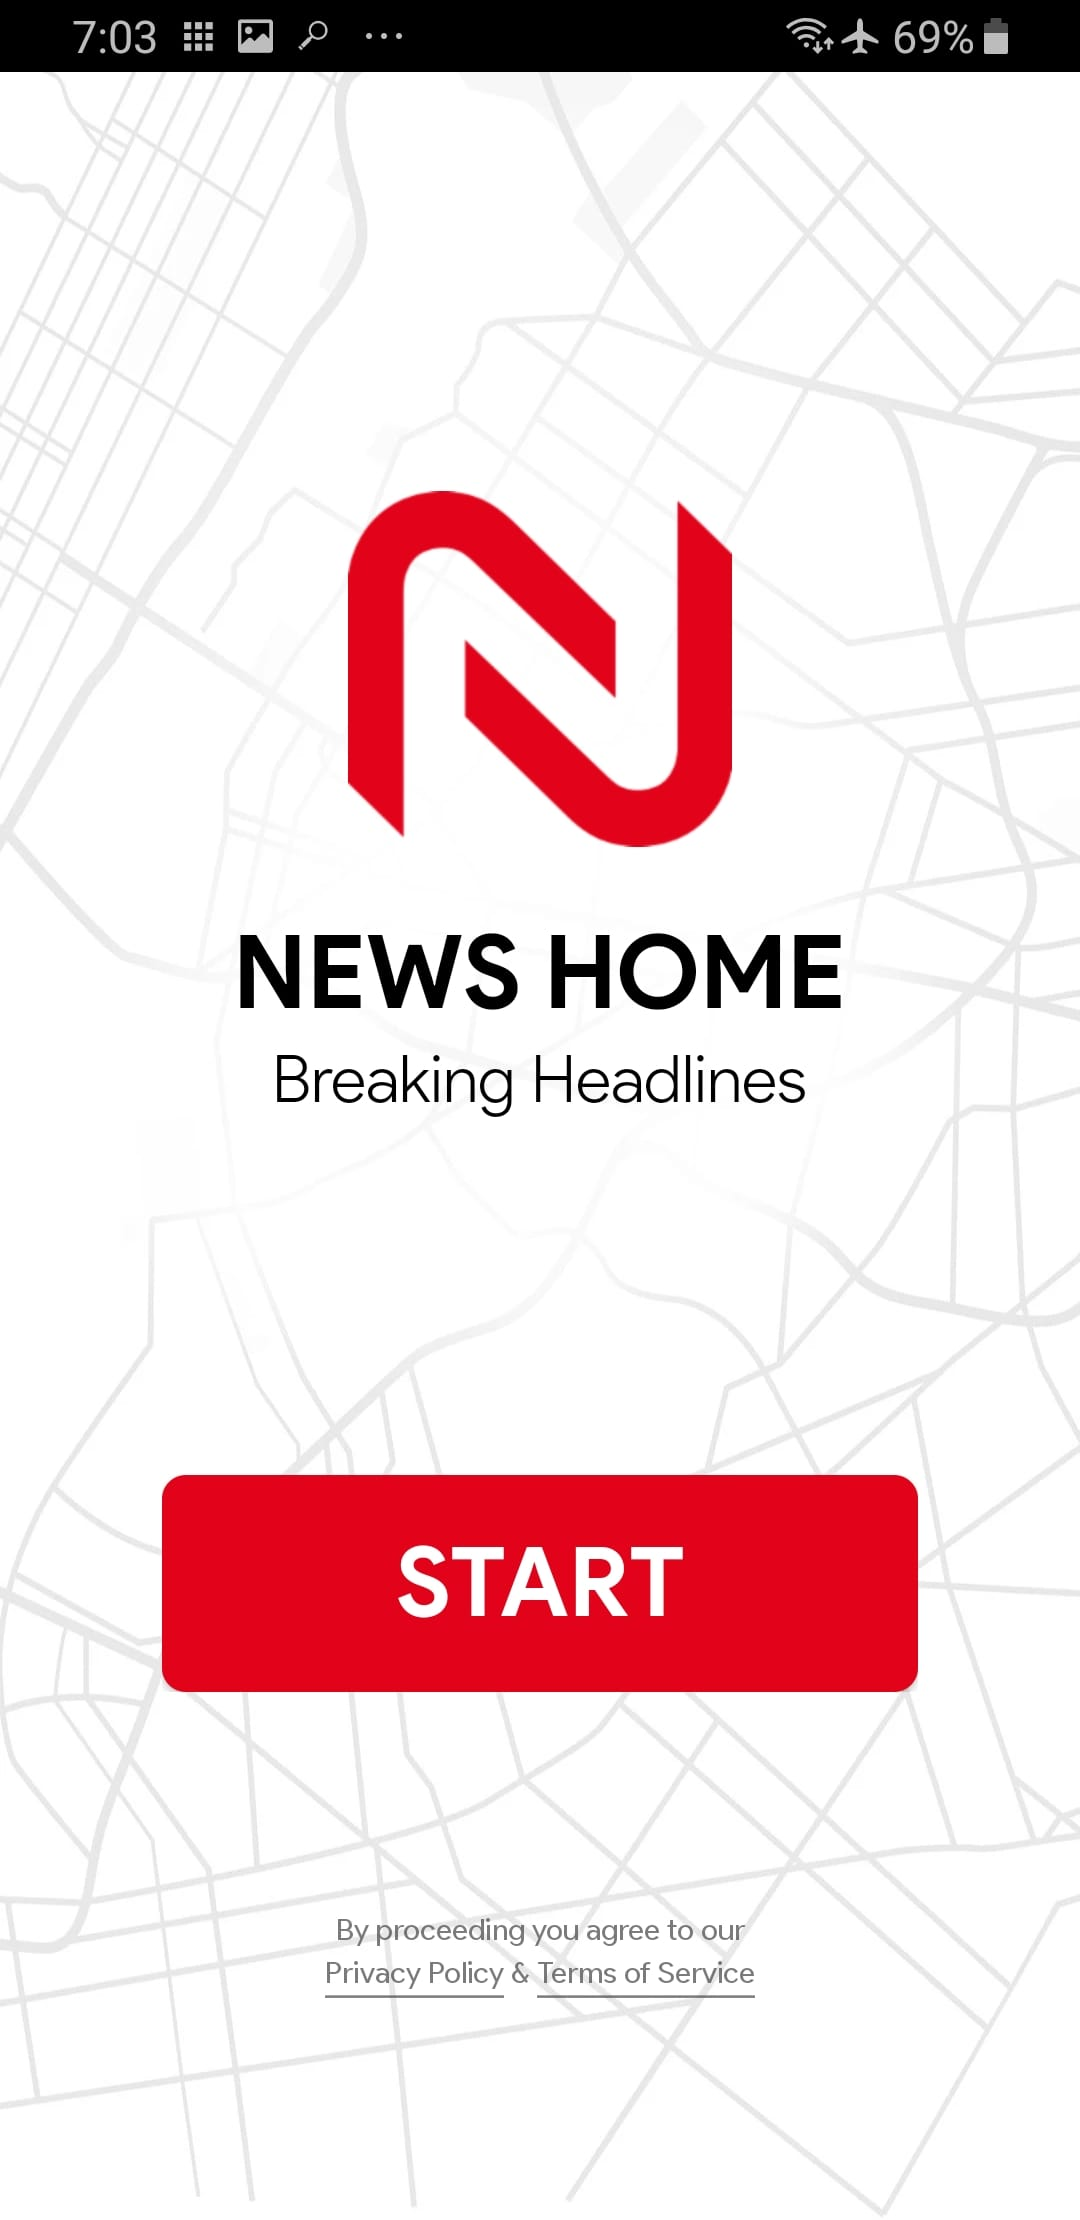 Screenshot From Our News Home: Breaking News, Local & World News Today Review